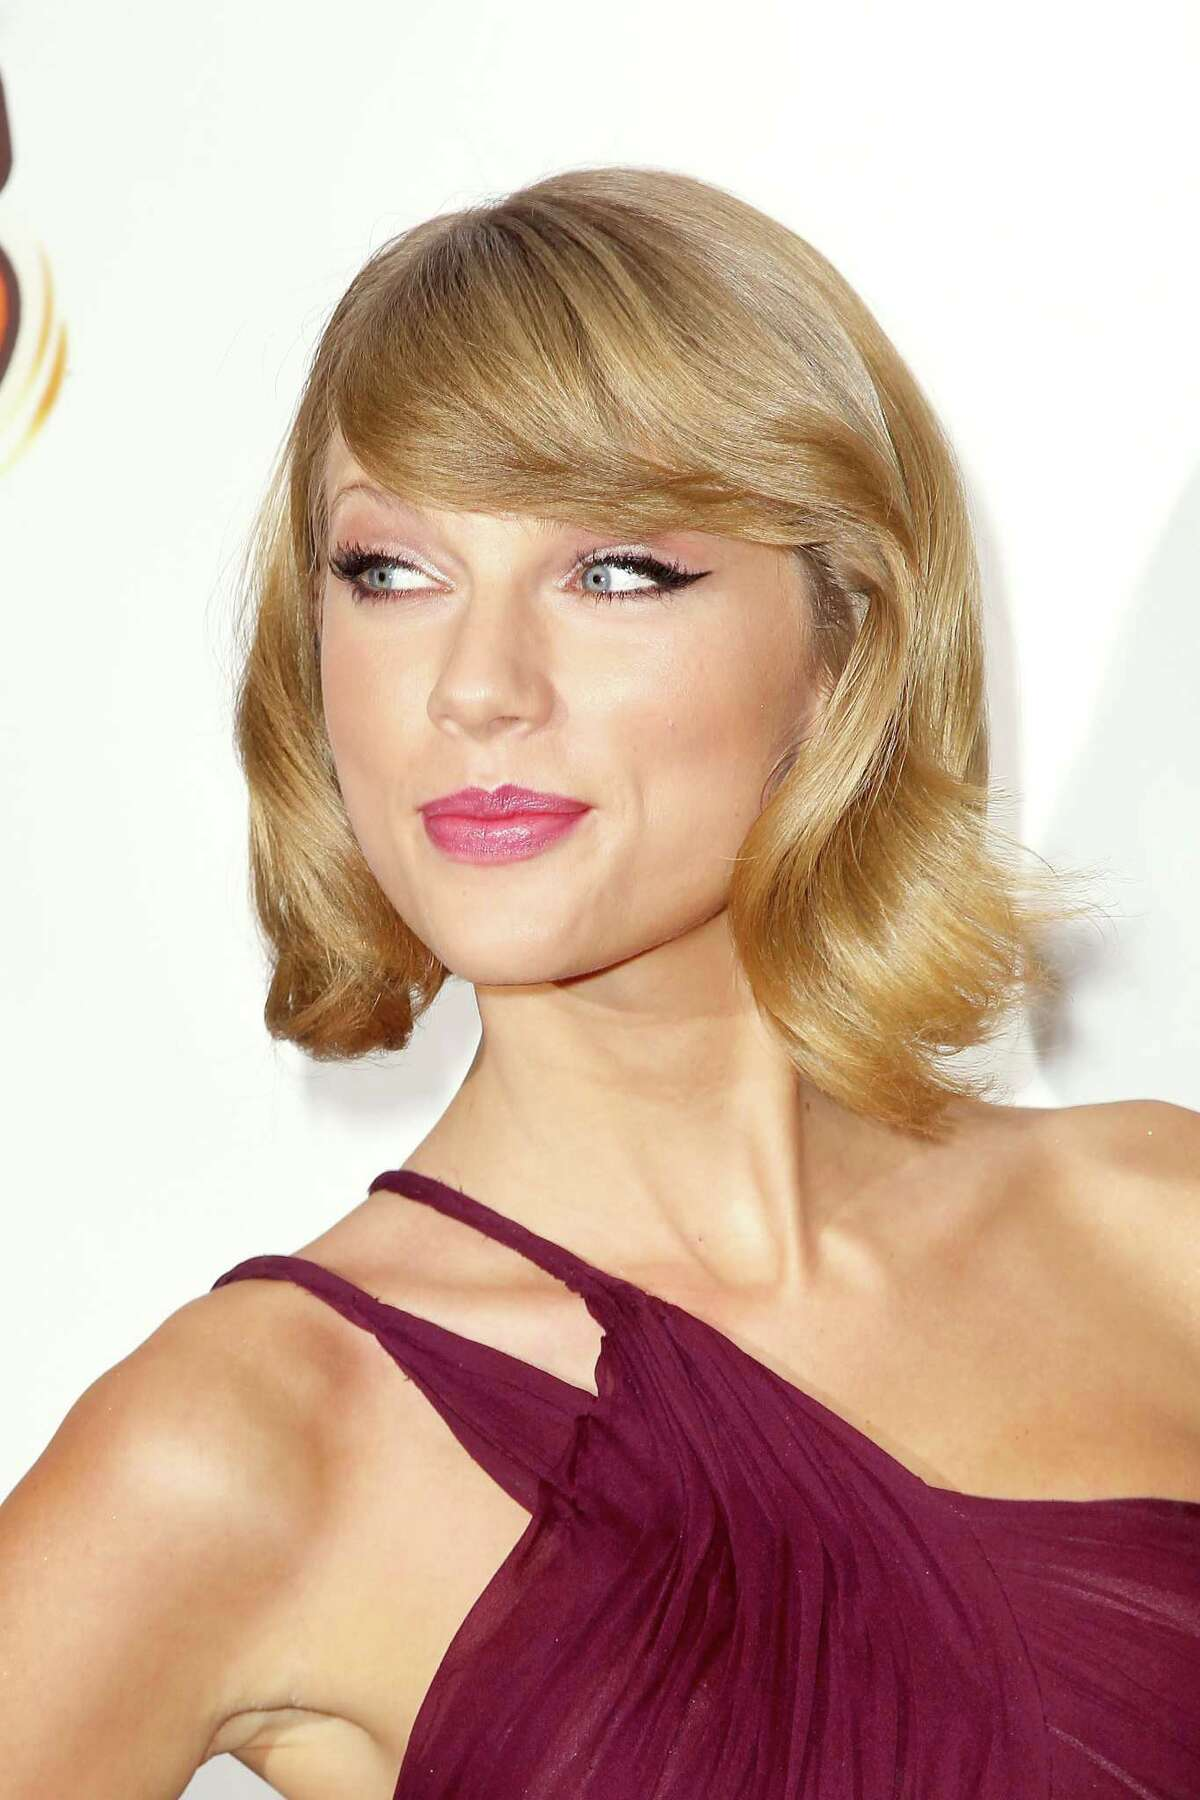 In this image released by Starpix, Taylor Swift attends the Z100's Jingle Ball 2014 at Madison Square Garden, Friday, Dec. 12, 2014 in New York. (AP Photo/Starpix, Aurora Rose)